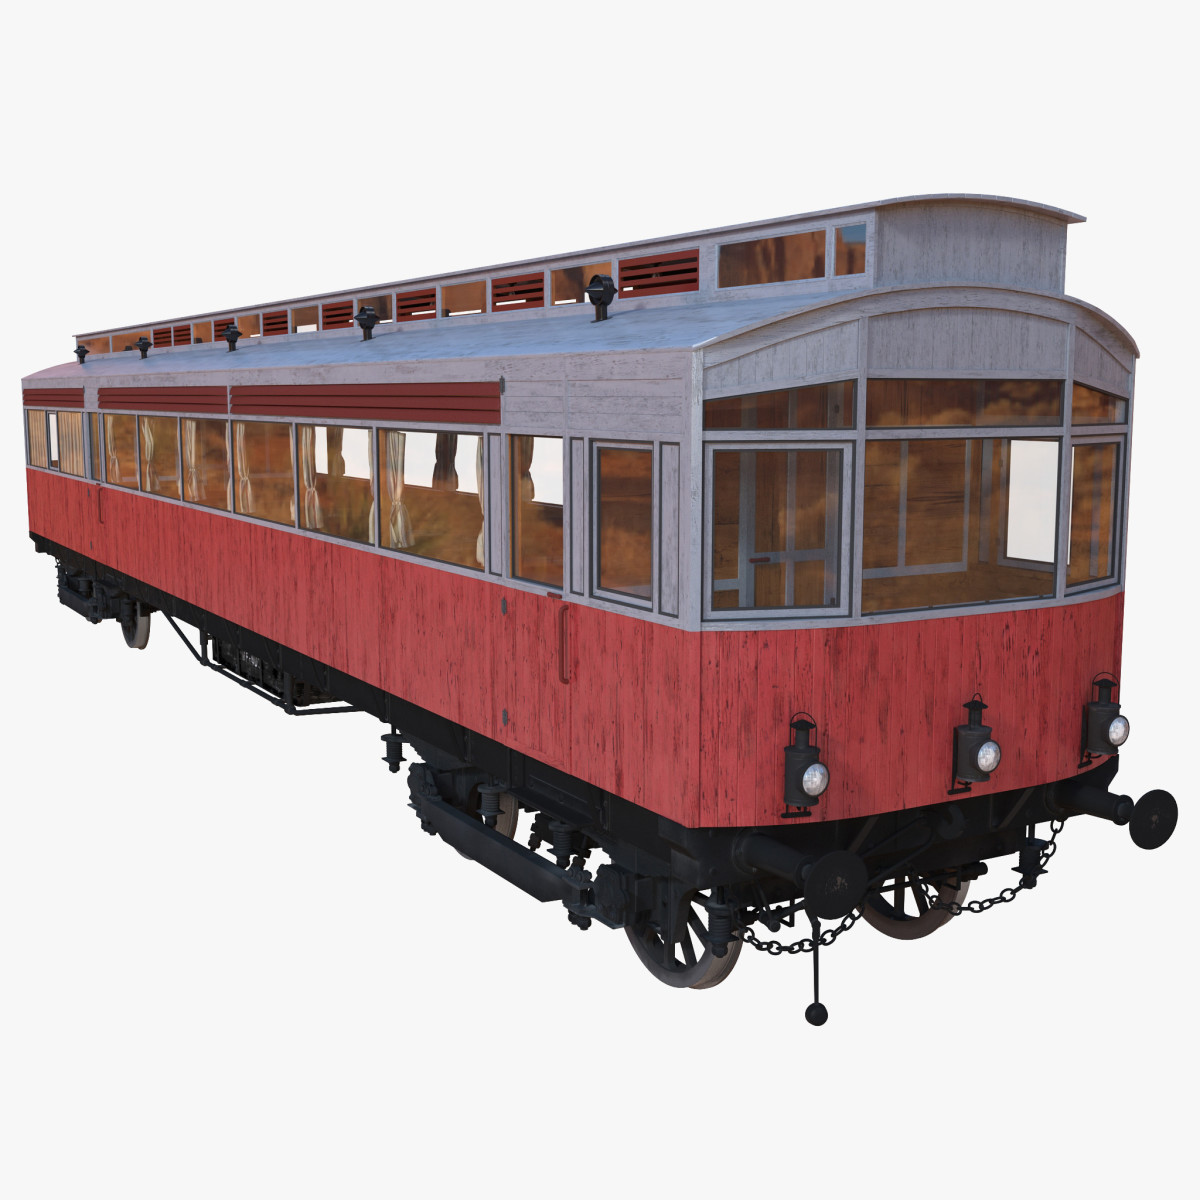 A computer-created image of the 1903 Petrol-electric Autocar in the course of being restored - see also ROPFAMR 24: Autocars, Autocoaches etc. The vehicle is now operational